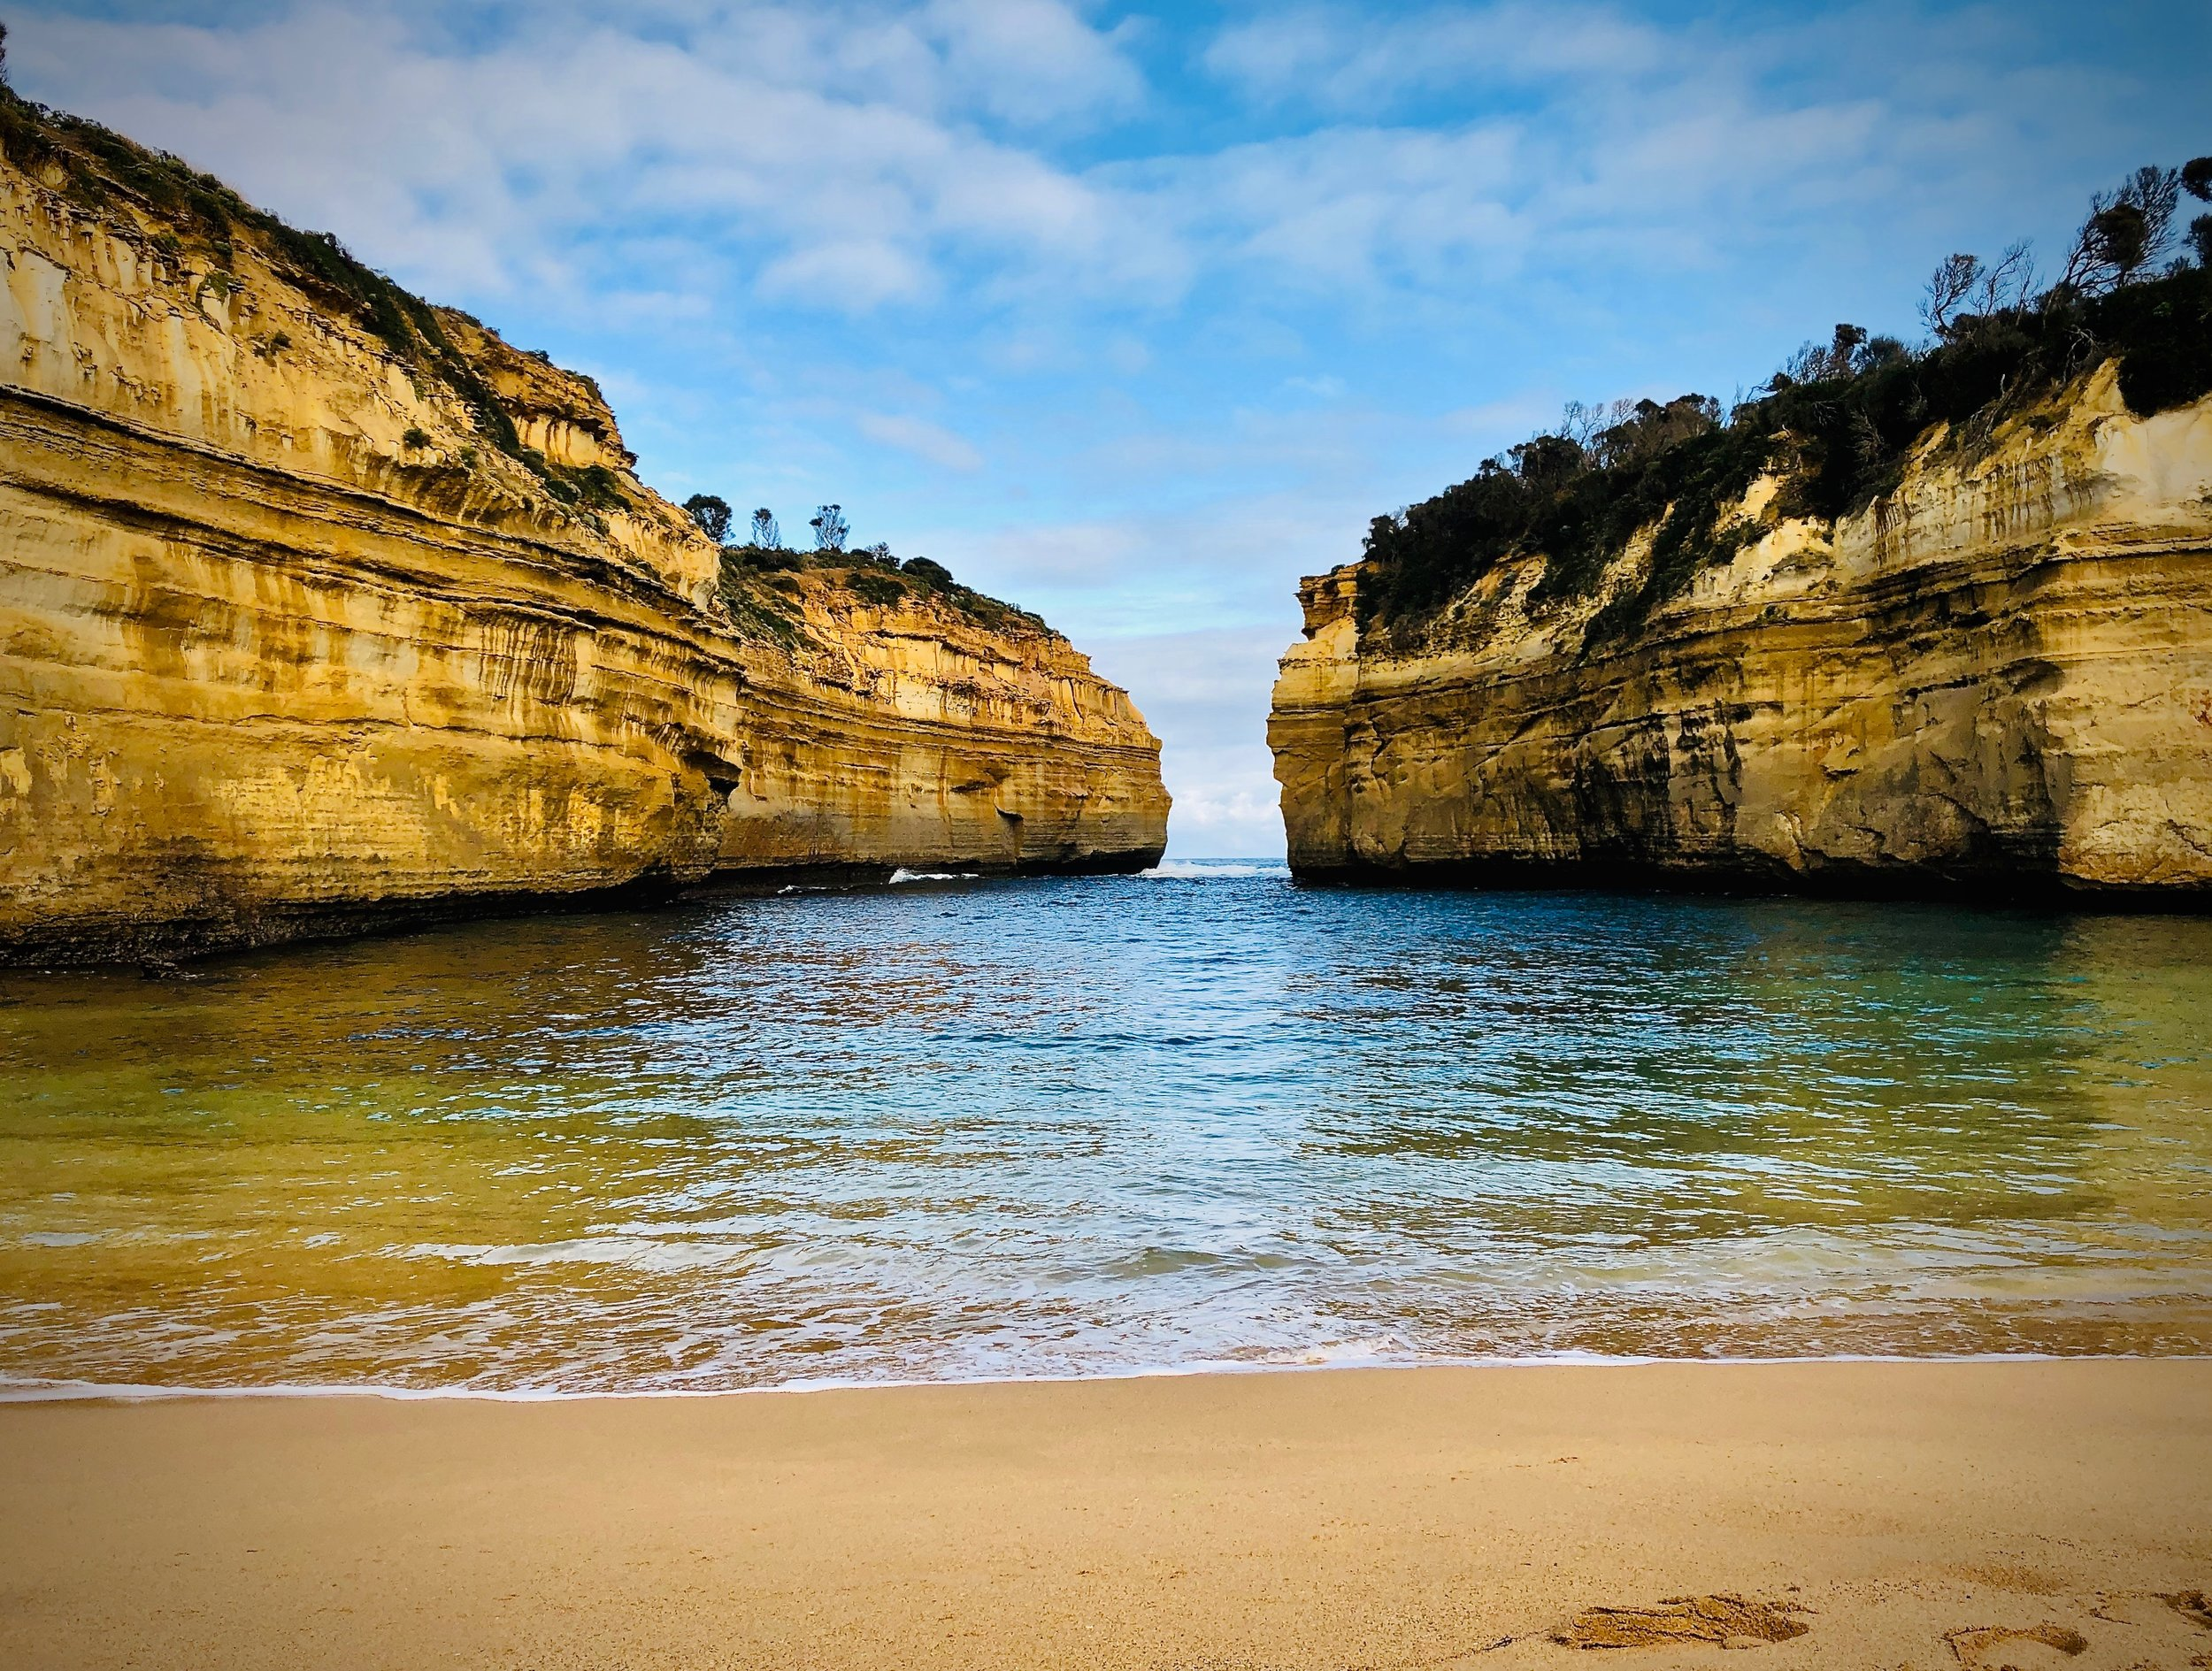 Loch Ard Gorge. We managed to beat the crowd by arriving early to get good pictures.